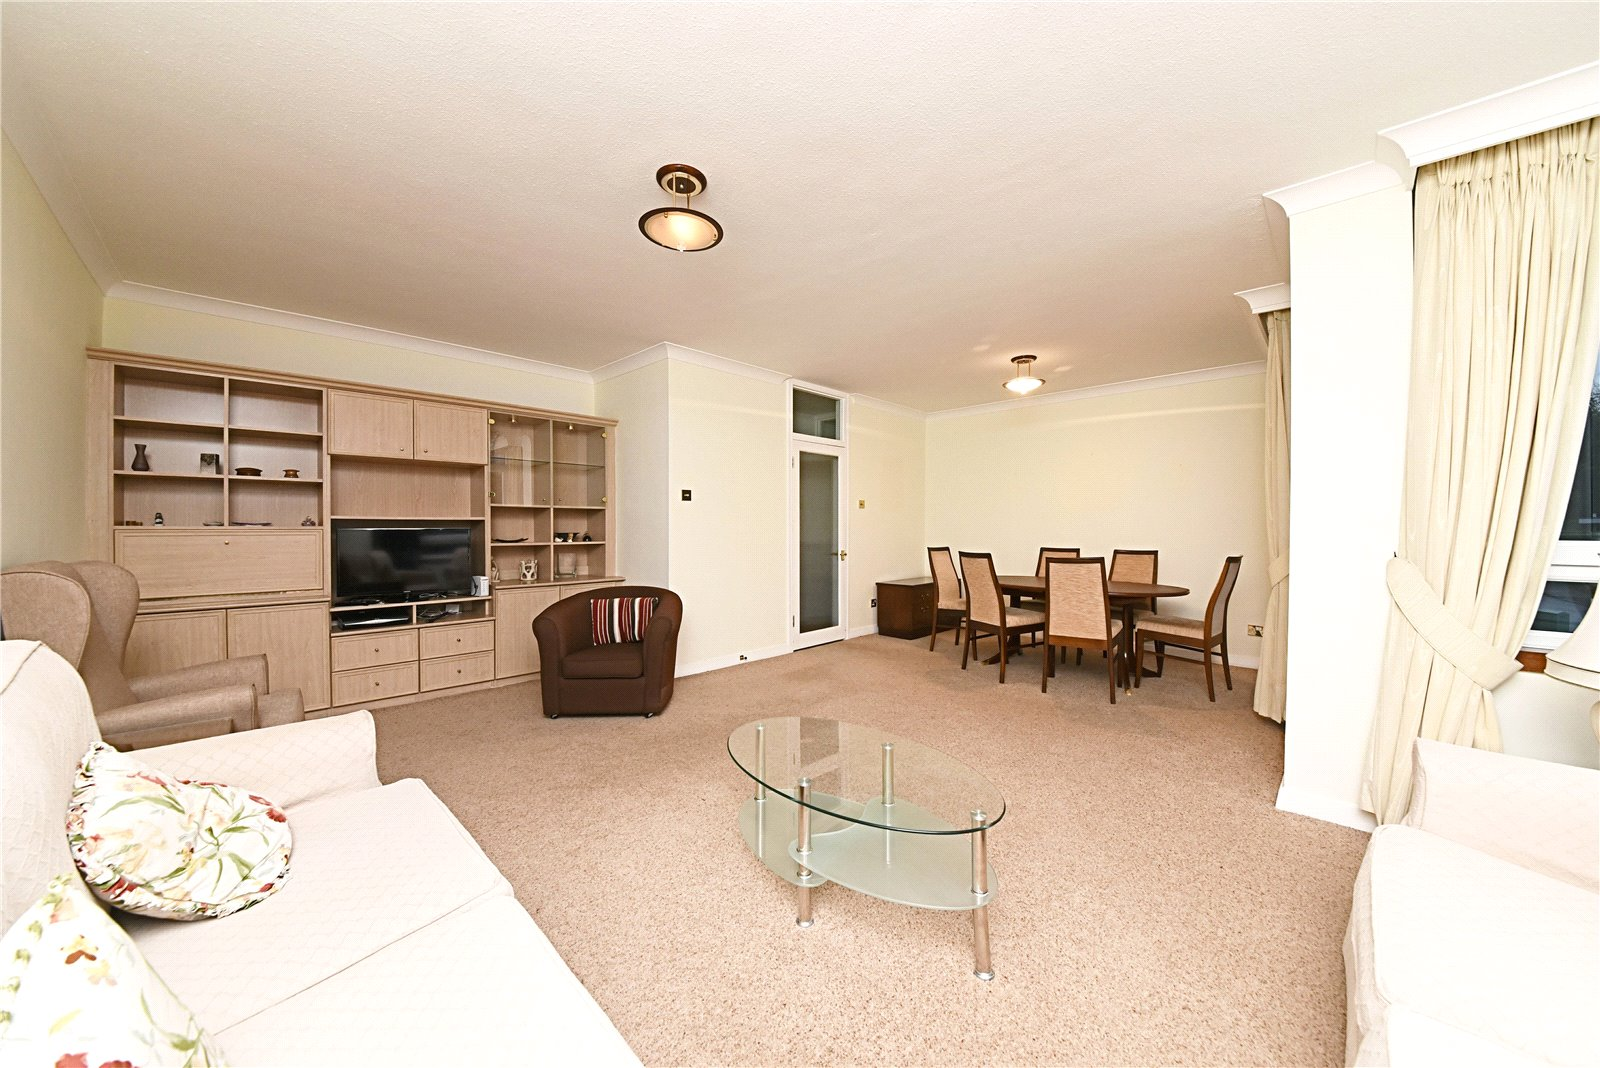 2 bed apartment for sale in Hendon, NW4 1RB  - Property Image 2